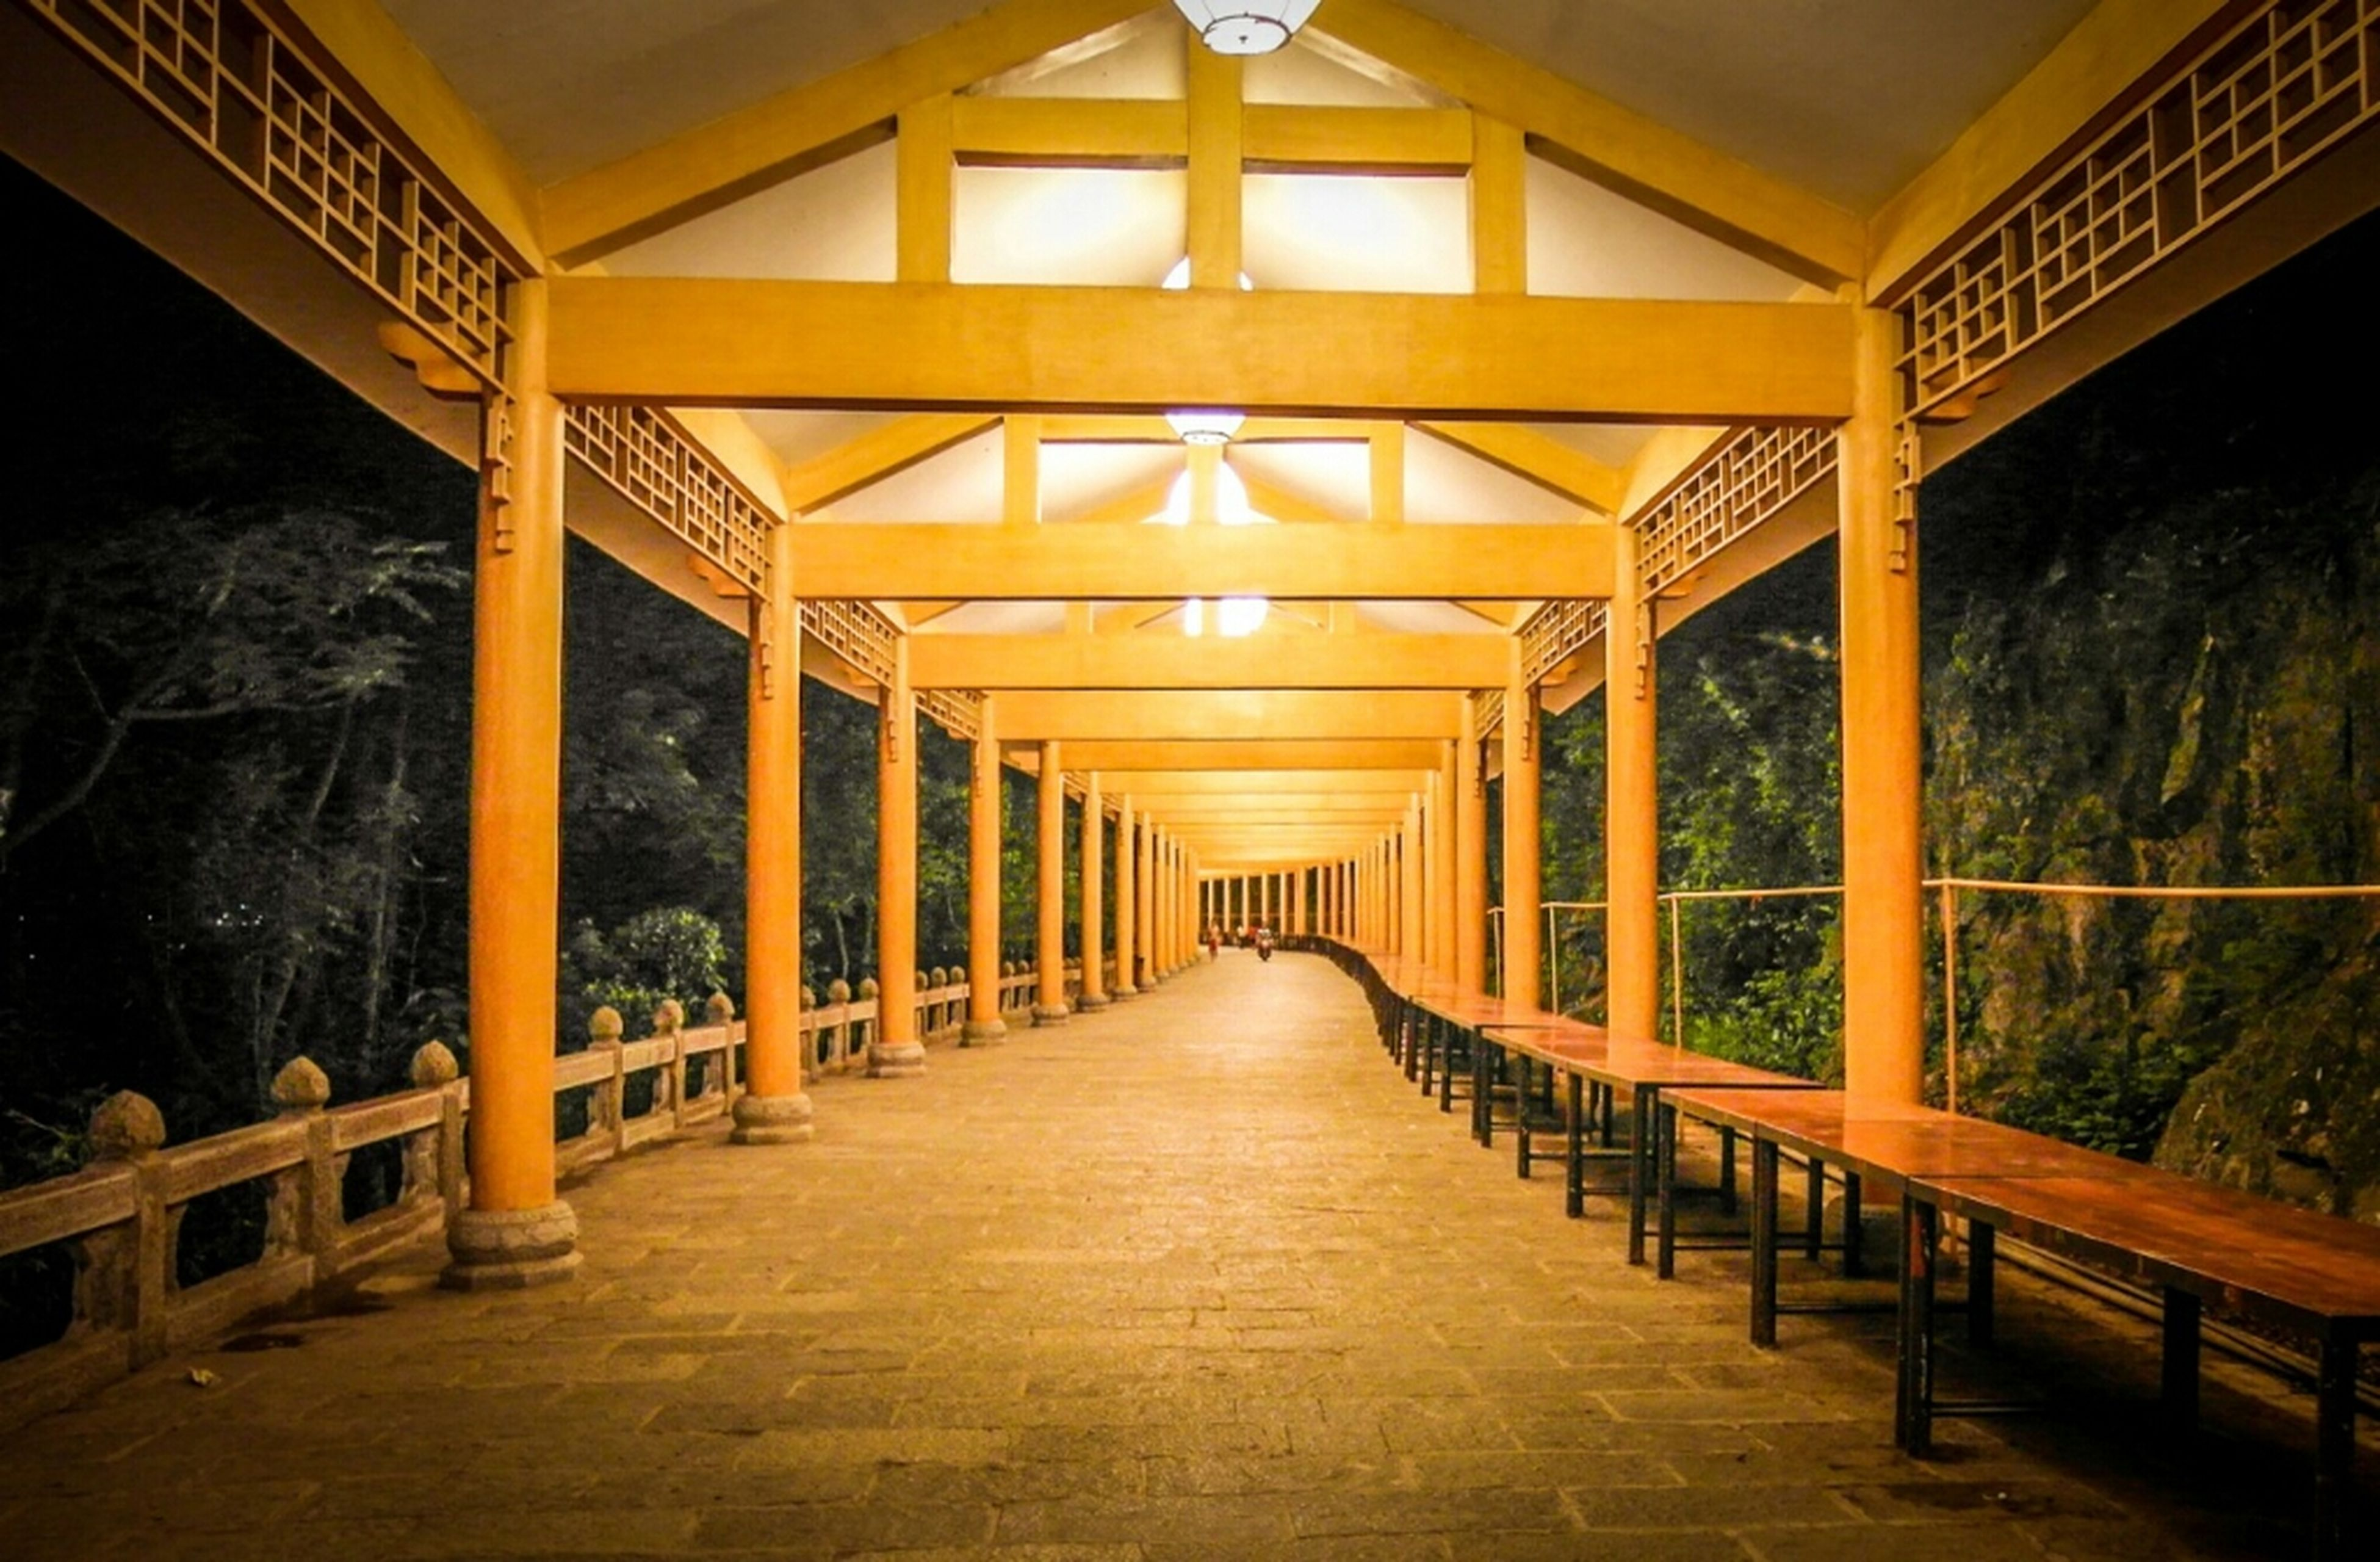 the way forward, diminishing perspective, built structure, architecture, vanishing point, indoors, illuminated, empty, long, ceiling, corridor, narrow, lighting equipment, walkway, absence, no people, railing, in a row, architectural column, connection